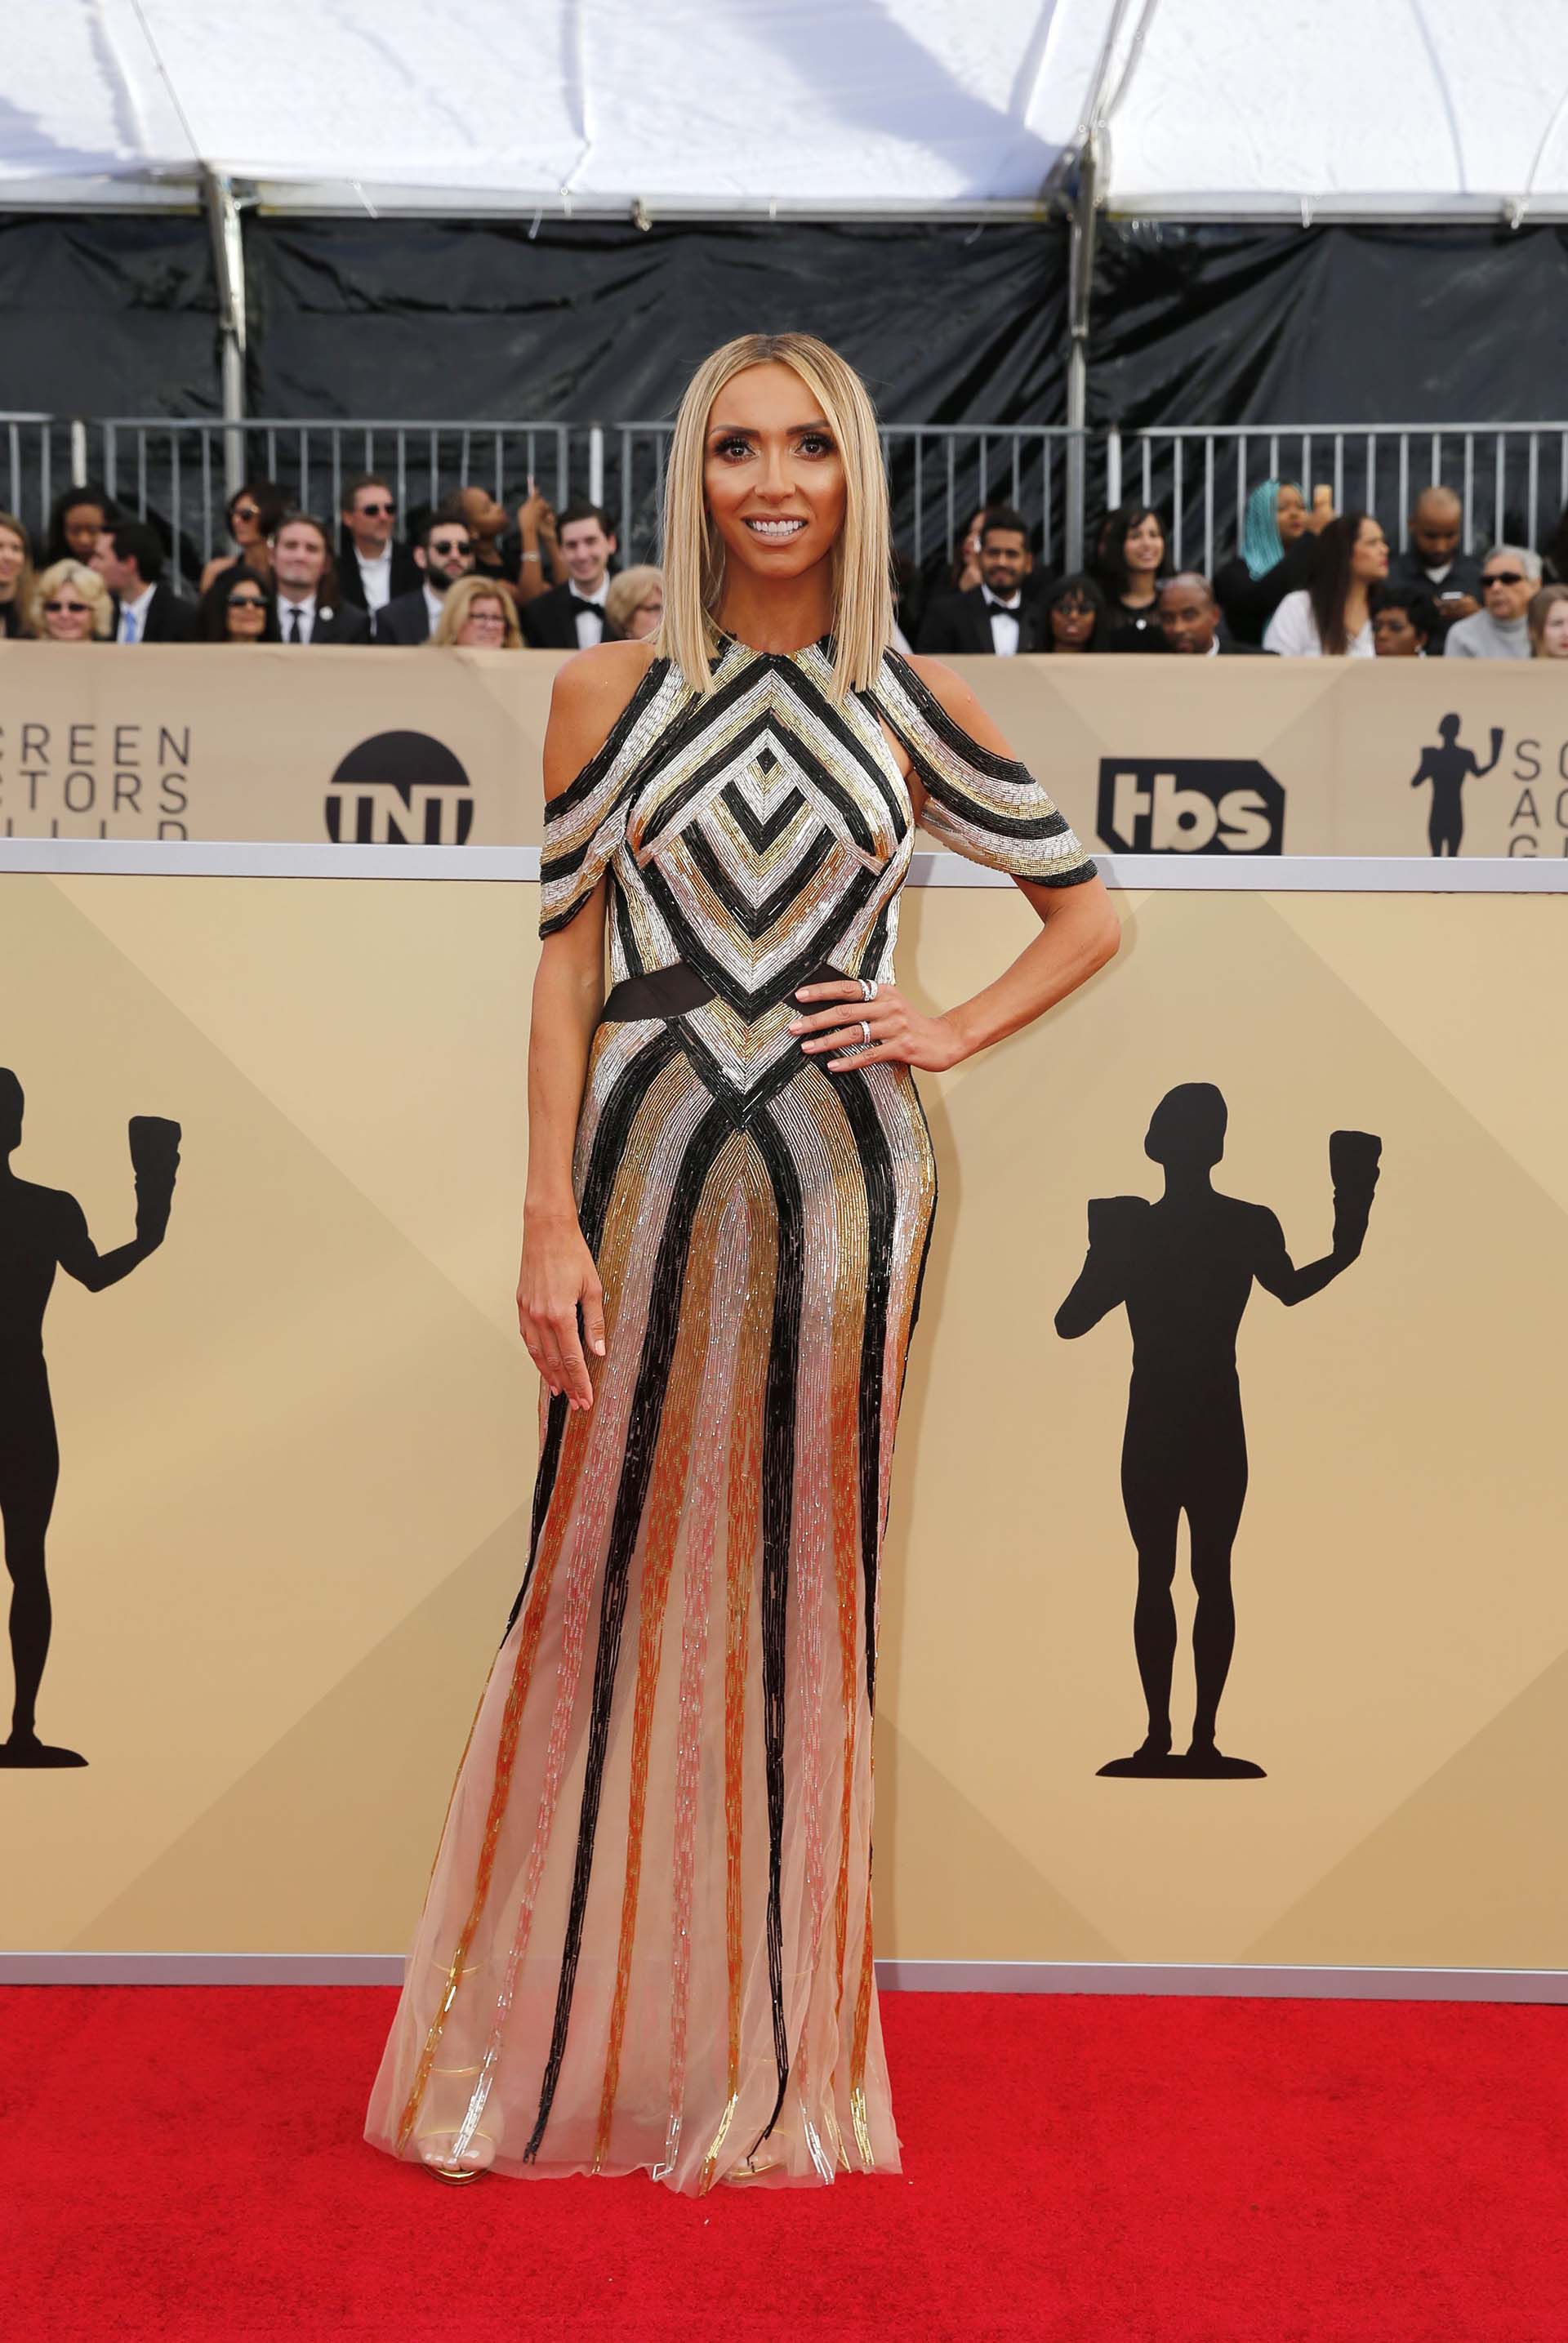 Giuliana Rancic (REUTERS/Monica Almeid)